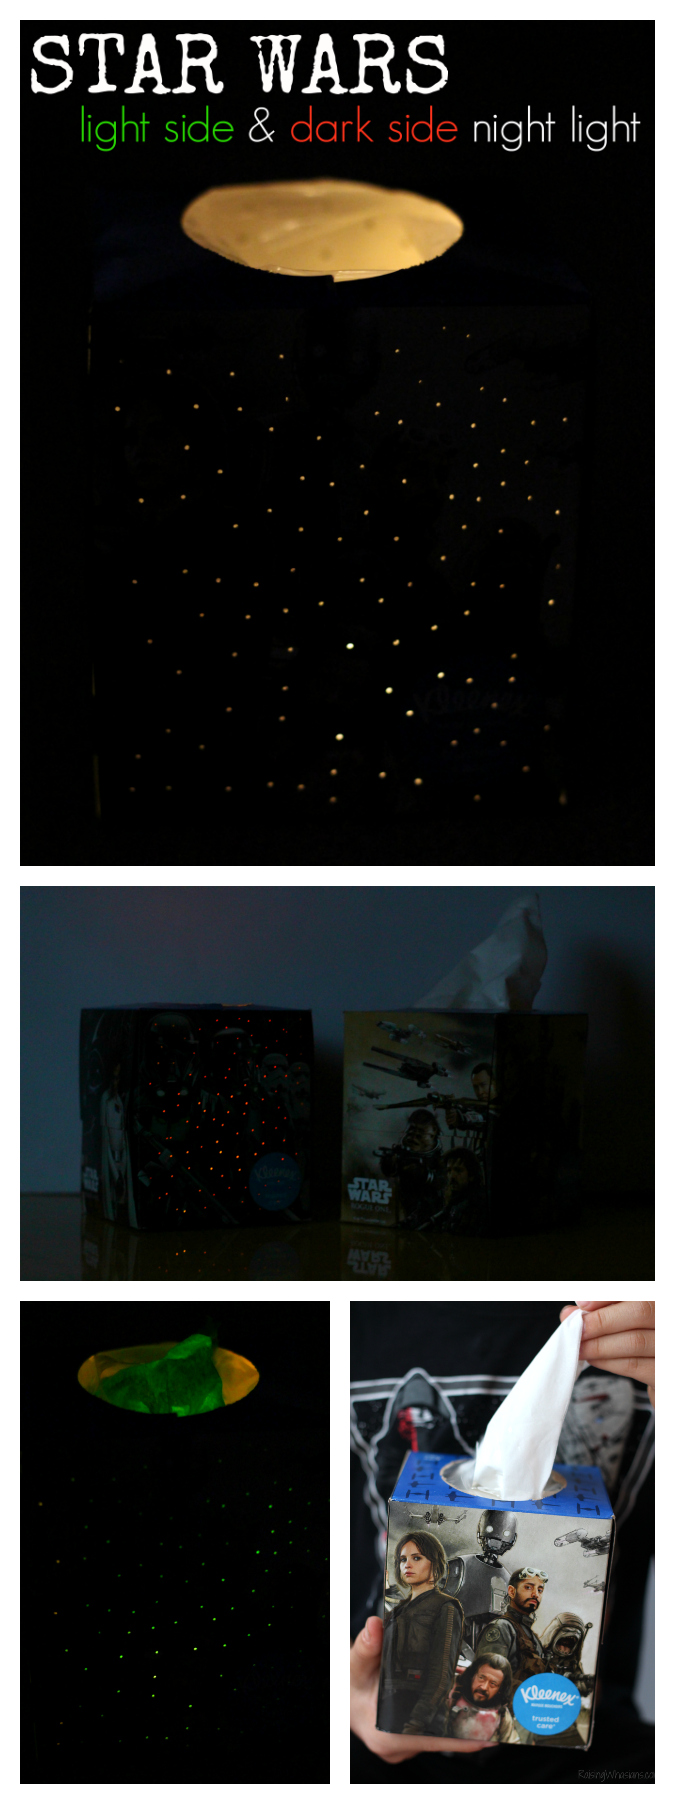 Star wars craft night light pinterest